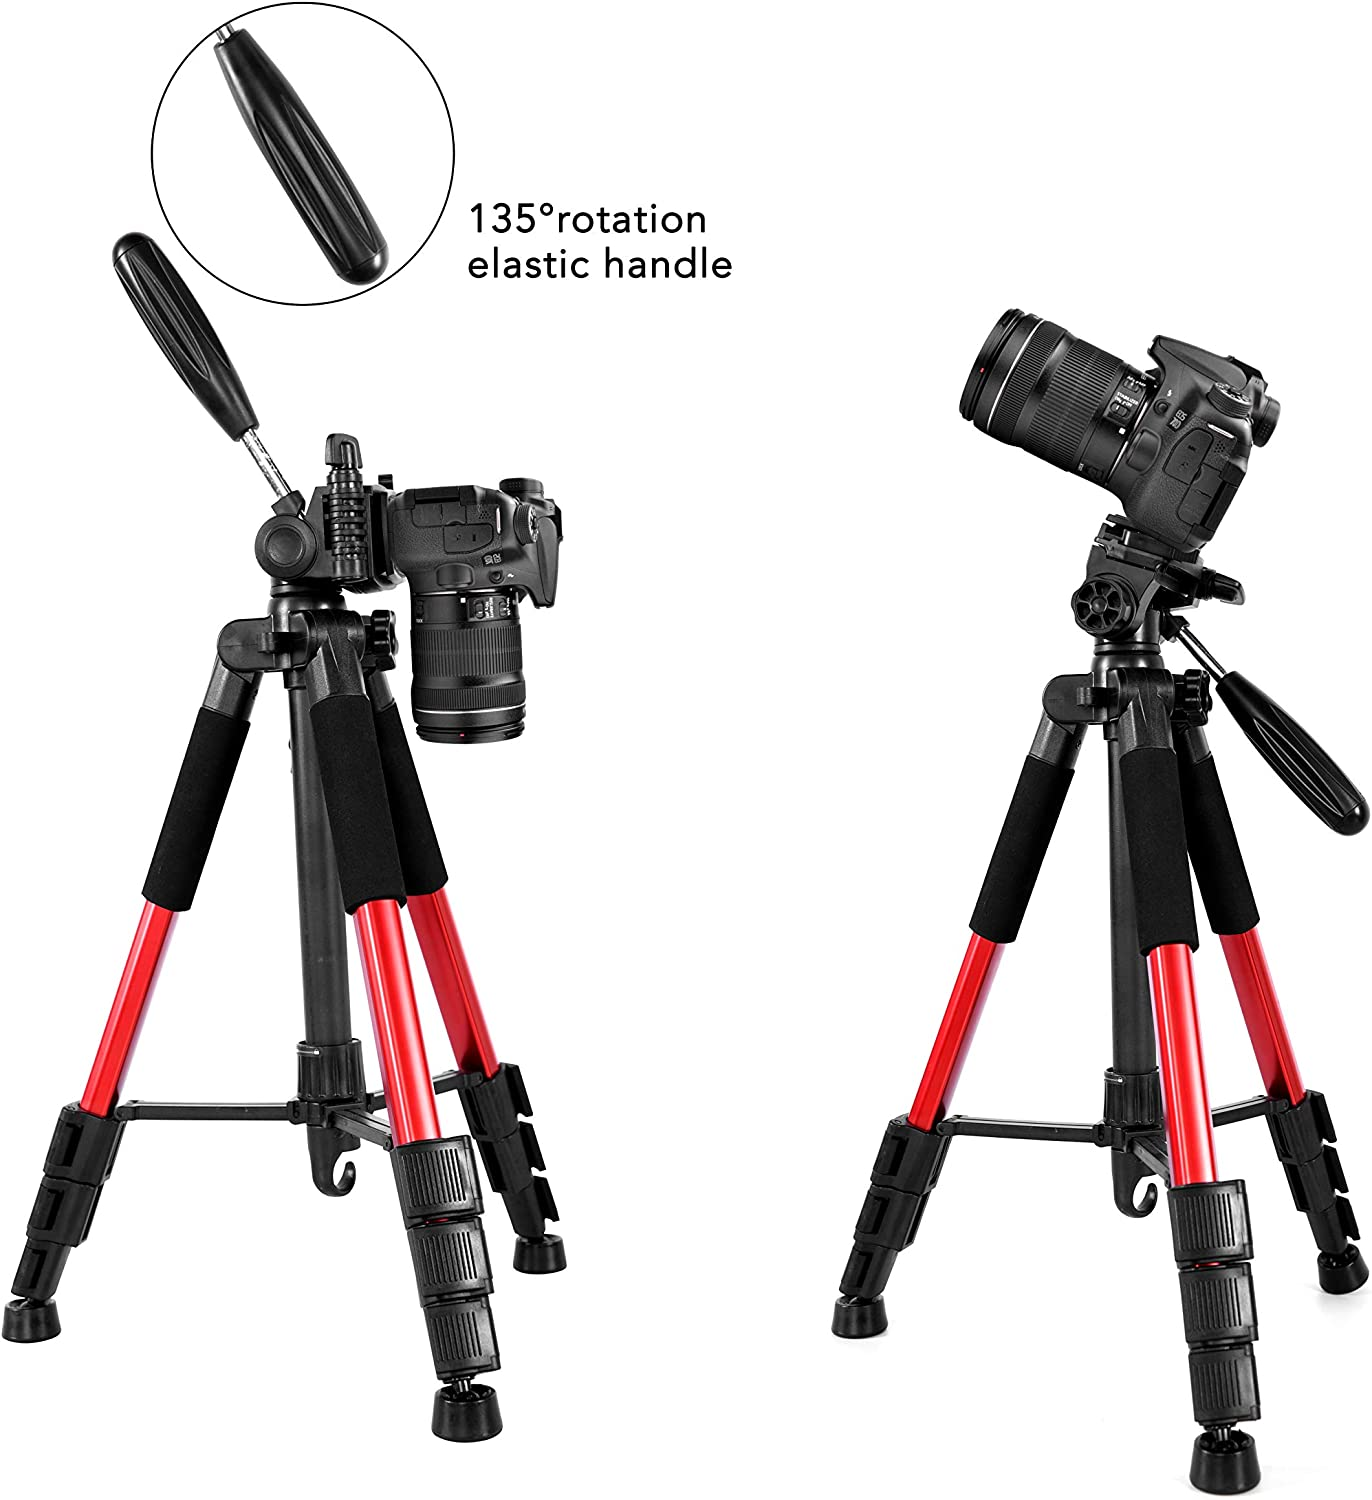 Portable Lightweight Camera SLR Ball Aluminum Tripods with 1//4 Plate,Bubble Level,Universal Phone Mount,Handle and Carry Bag for Canon Nikon Sony. Blue Travel Camera Tripod